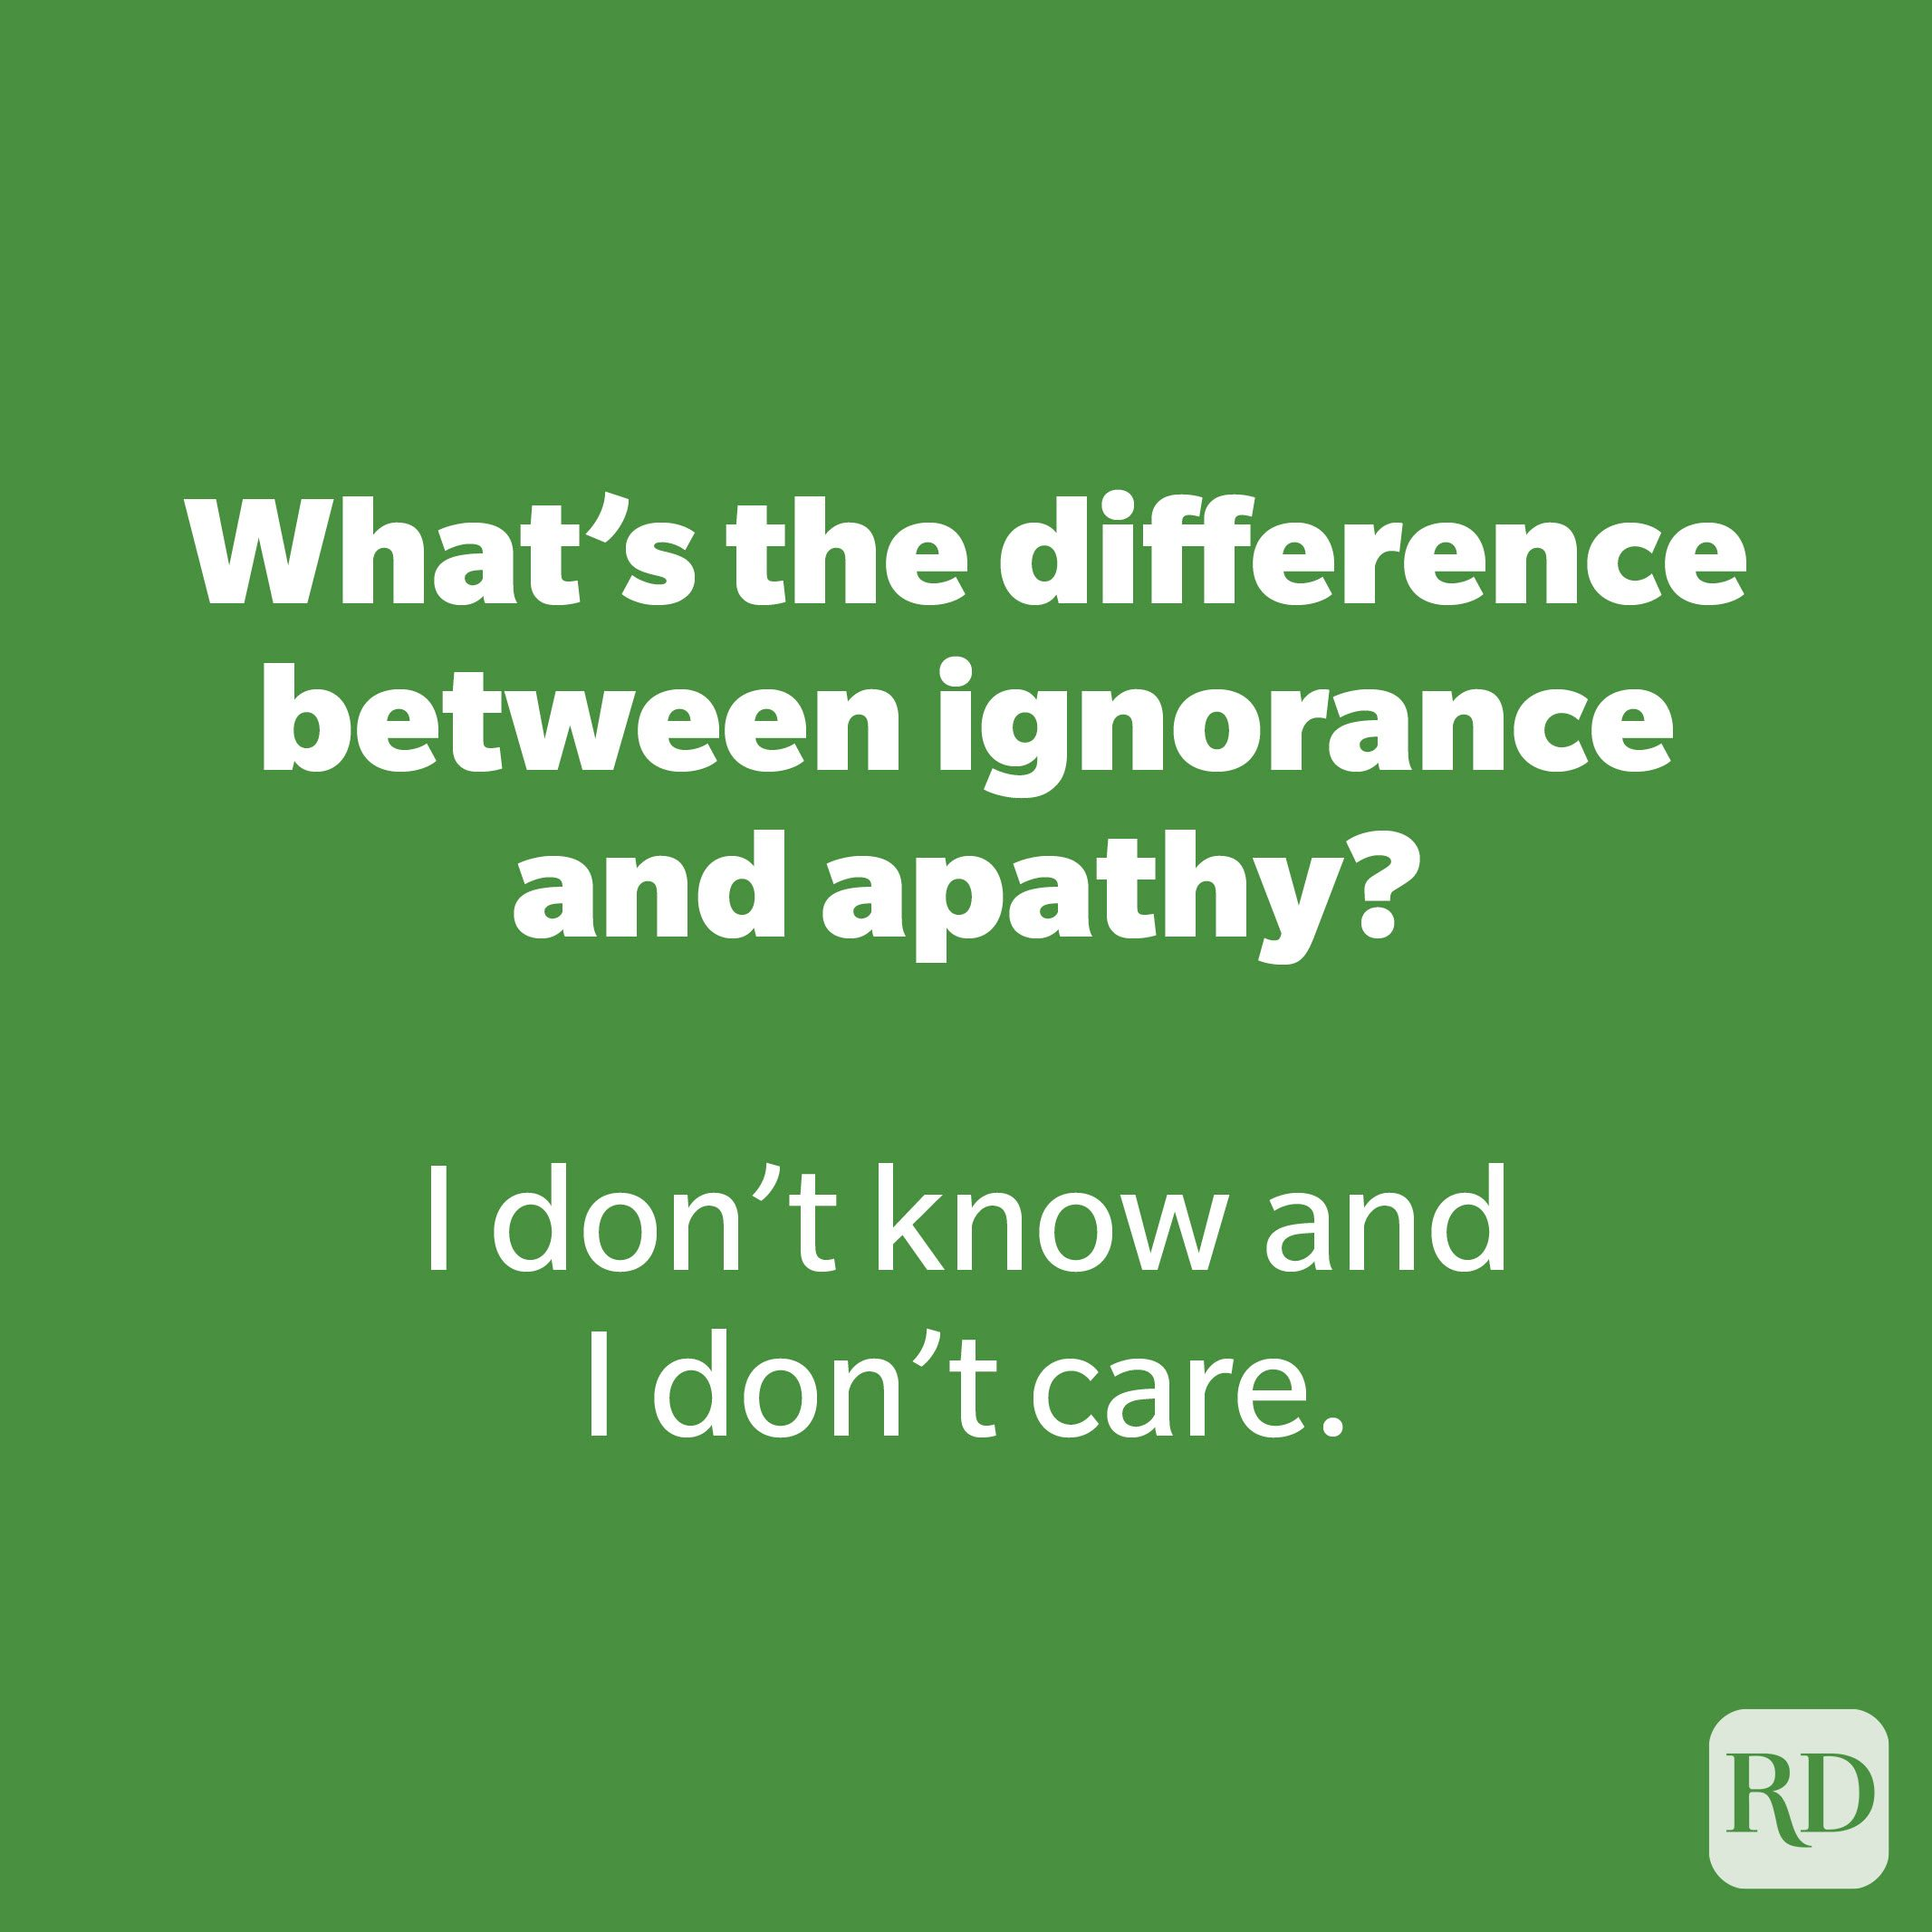 What's the difference between ignorance and apathy?